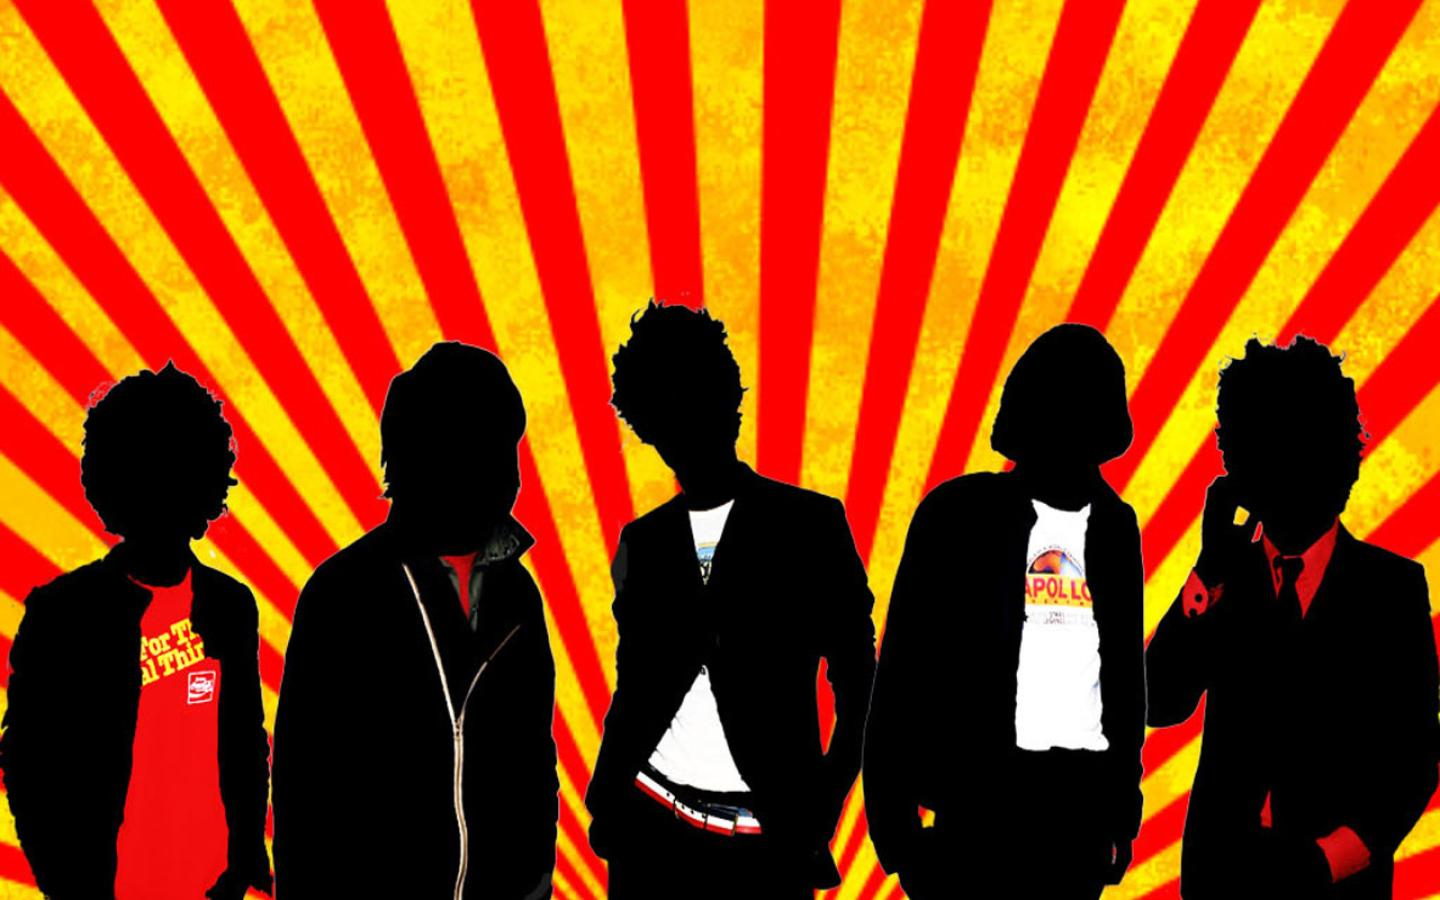 Best band the strokes 1440x900 wallpaper 3 the strokes wallpaper 3 1440 x 900 thecheapjerseys Images